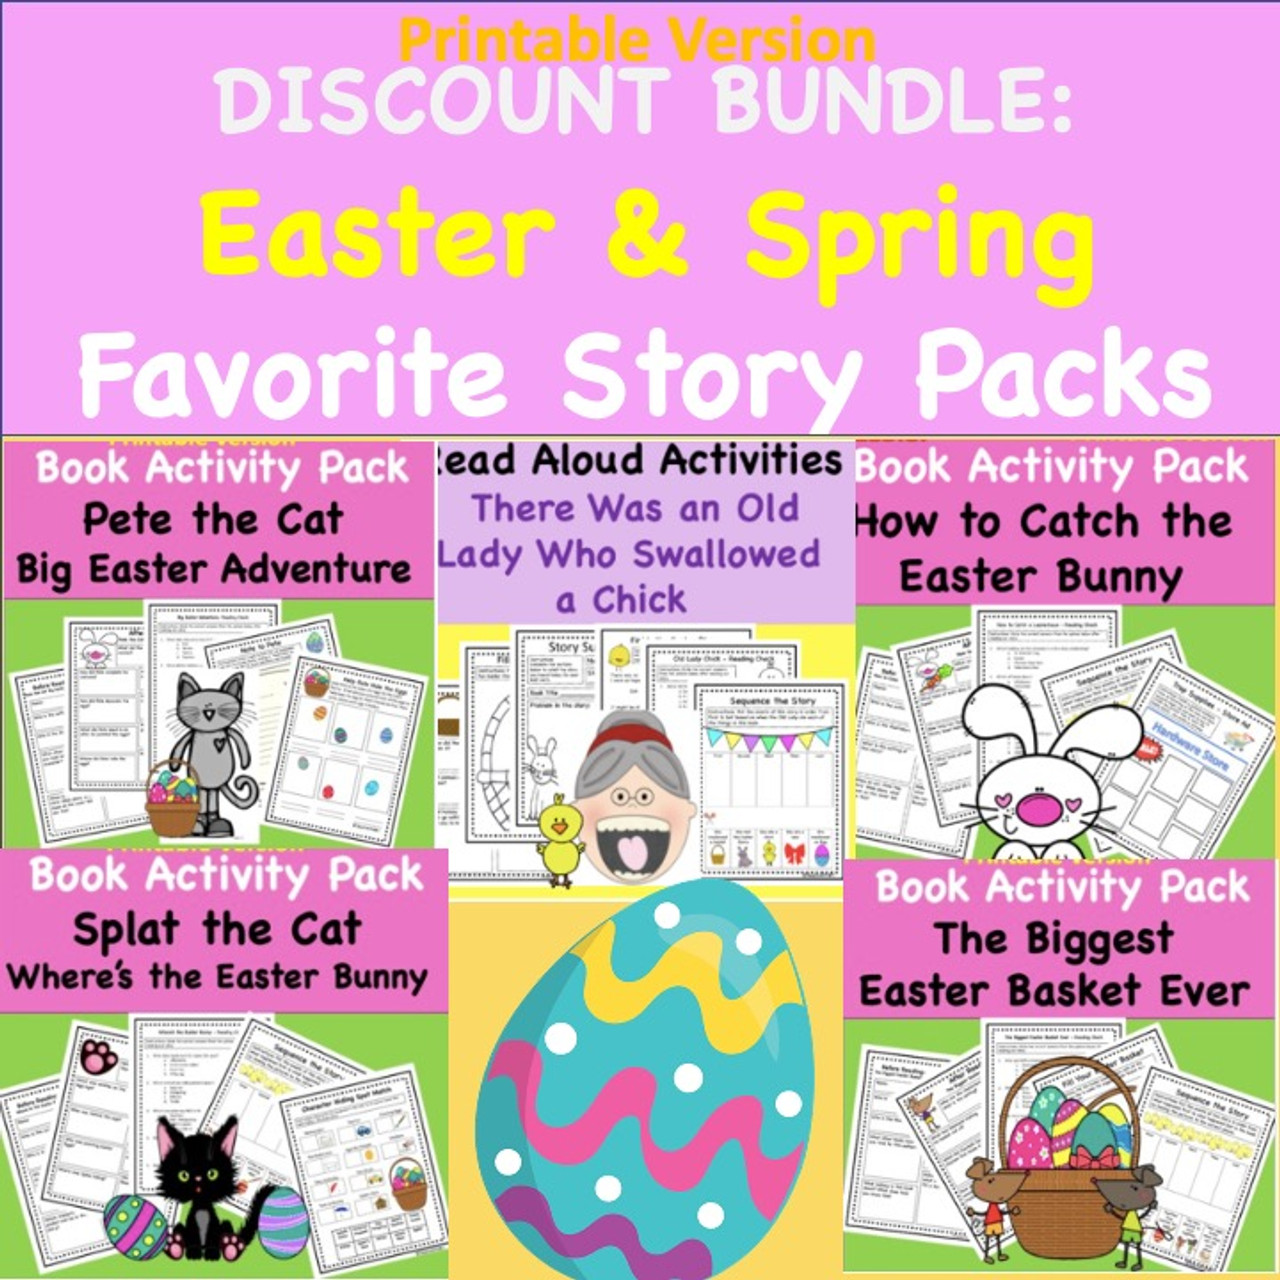 Easter and Spring Read-A-Loud Activities - Discount Bundle - Printable Version (Buy 3 Get 2 FREE)